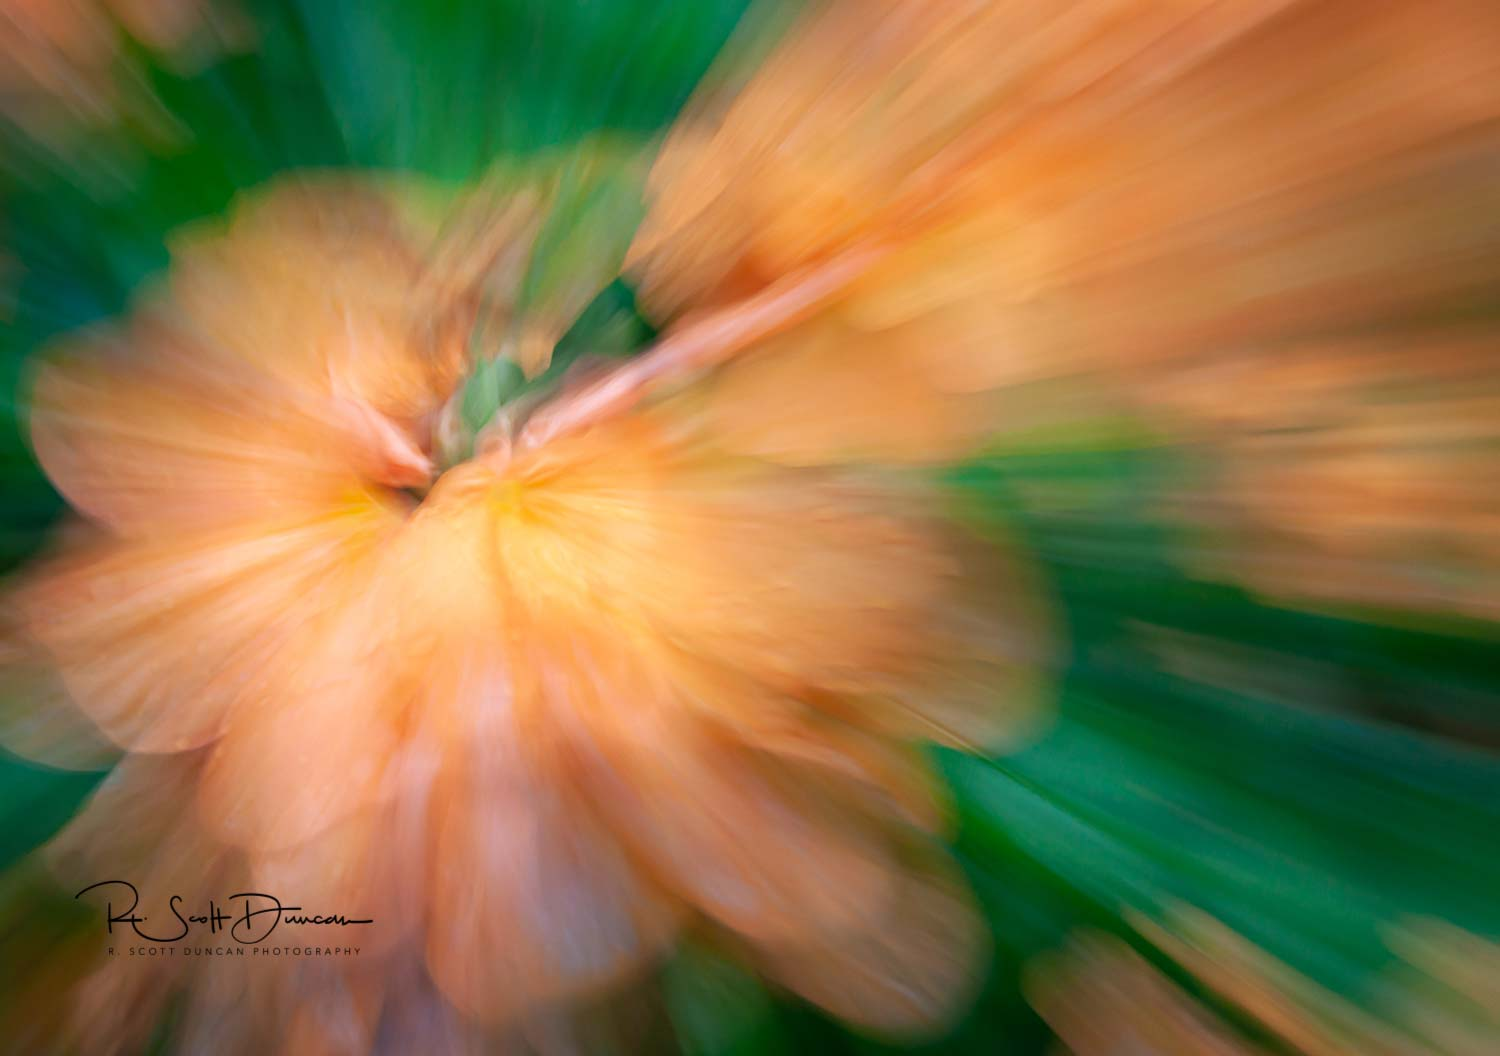 peach-flower-zoom-abstract-crop-photo.jpg